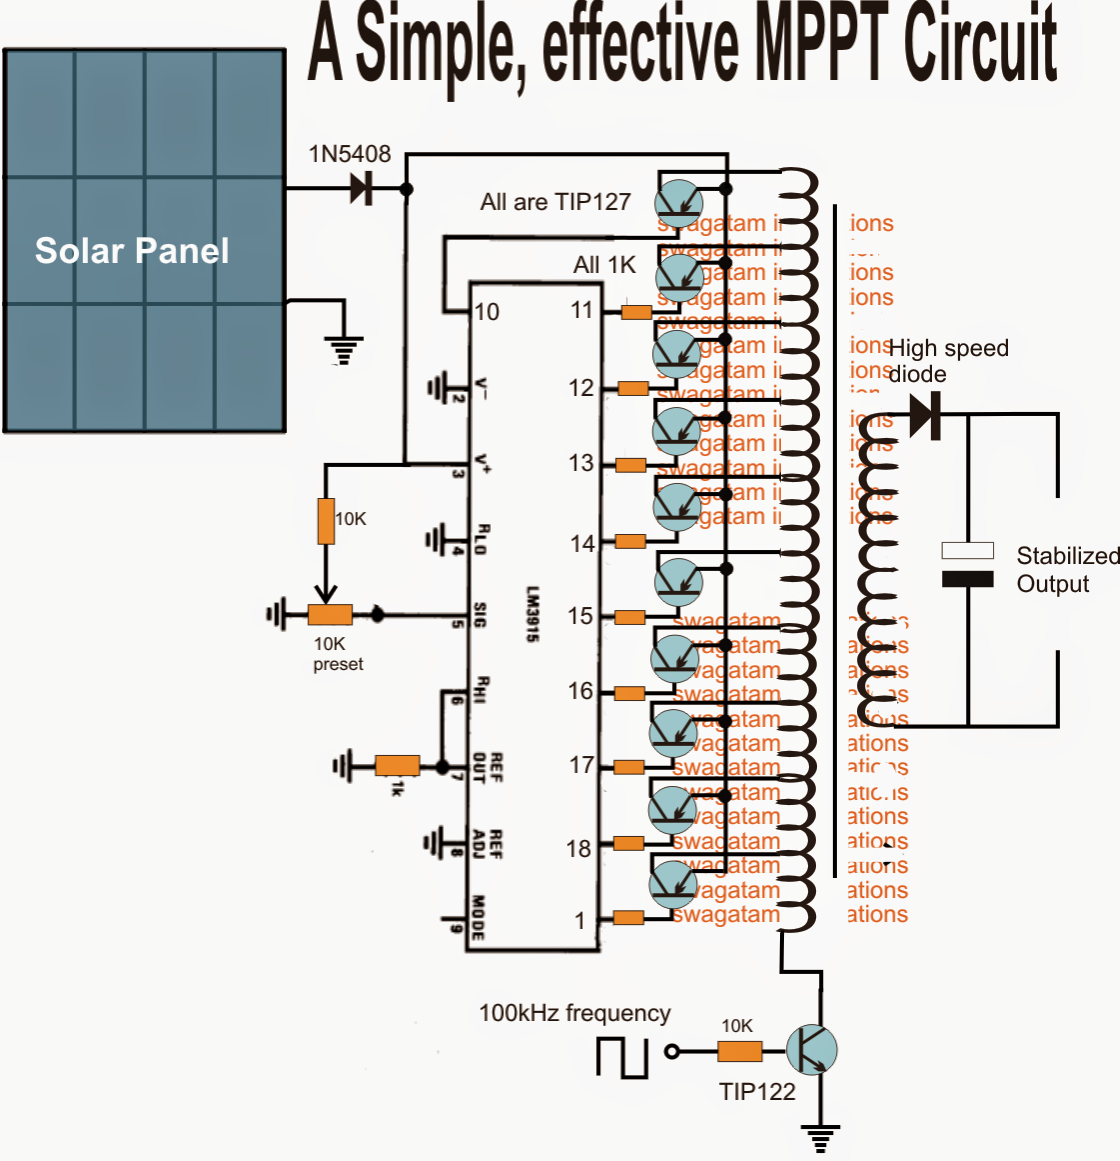 mppt circuit diagram 7 16 castlefans de \u2022mppt circuit diagram vyn zaislunamai uk u2022 rh vyn zaislunamai uk mppt solar battery charger circuit diagram mppt solar charge controller circuit diagram